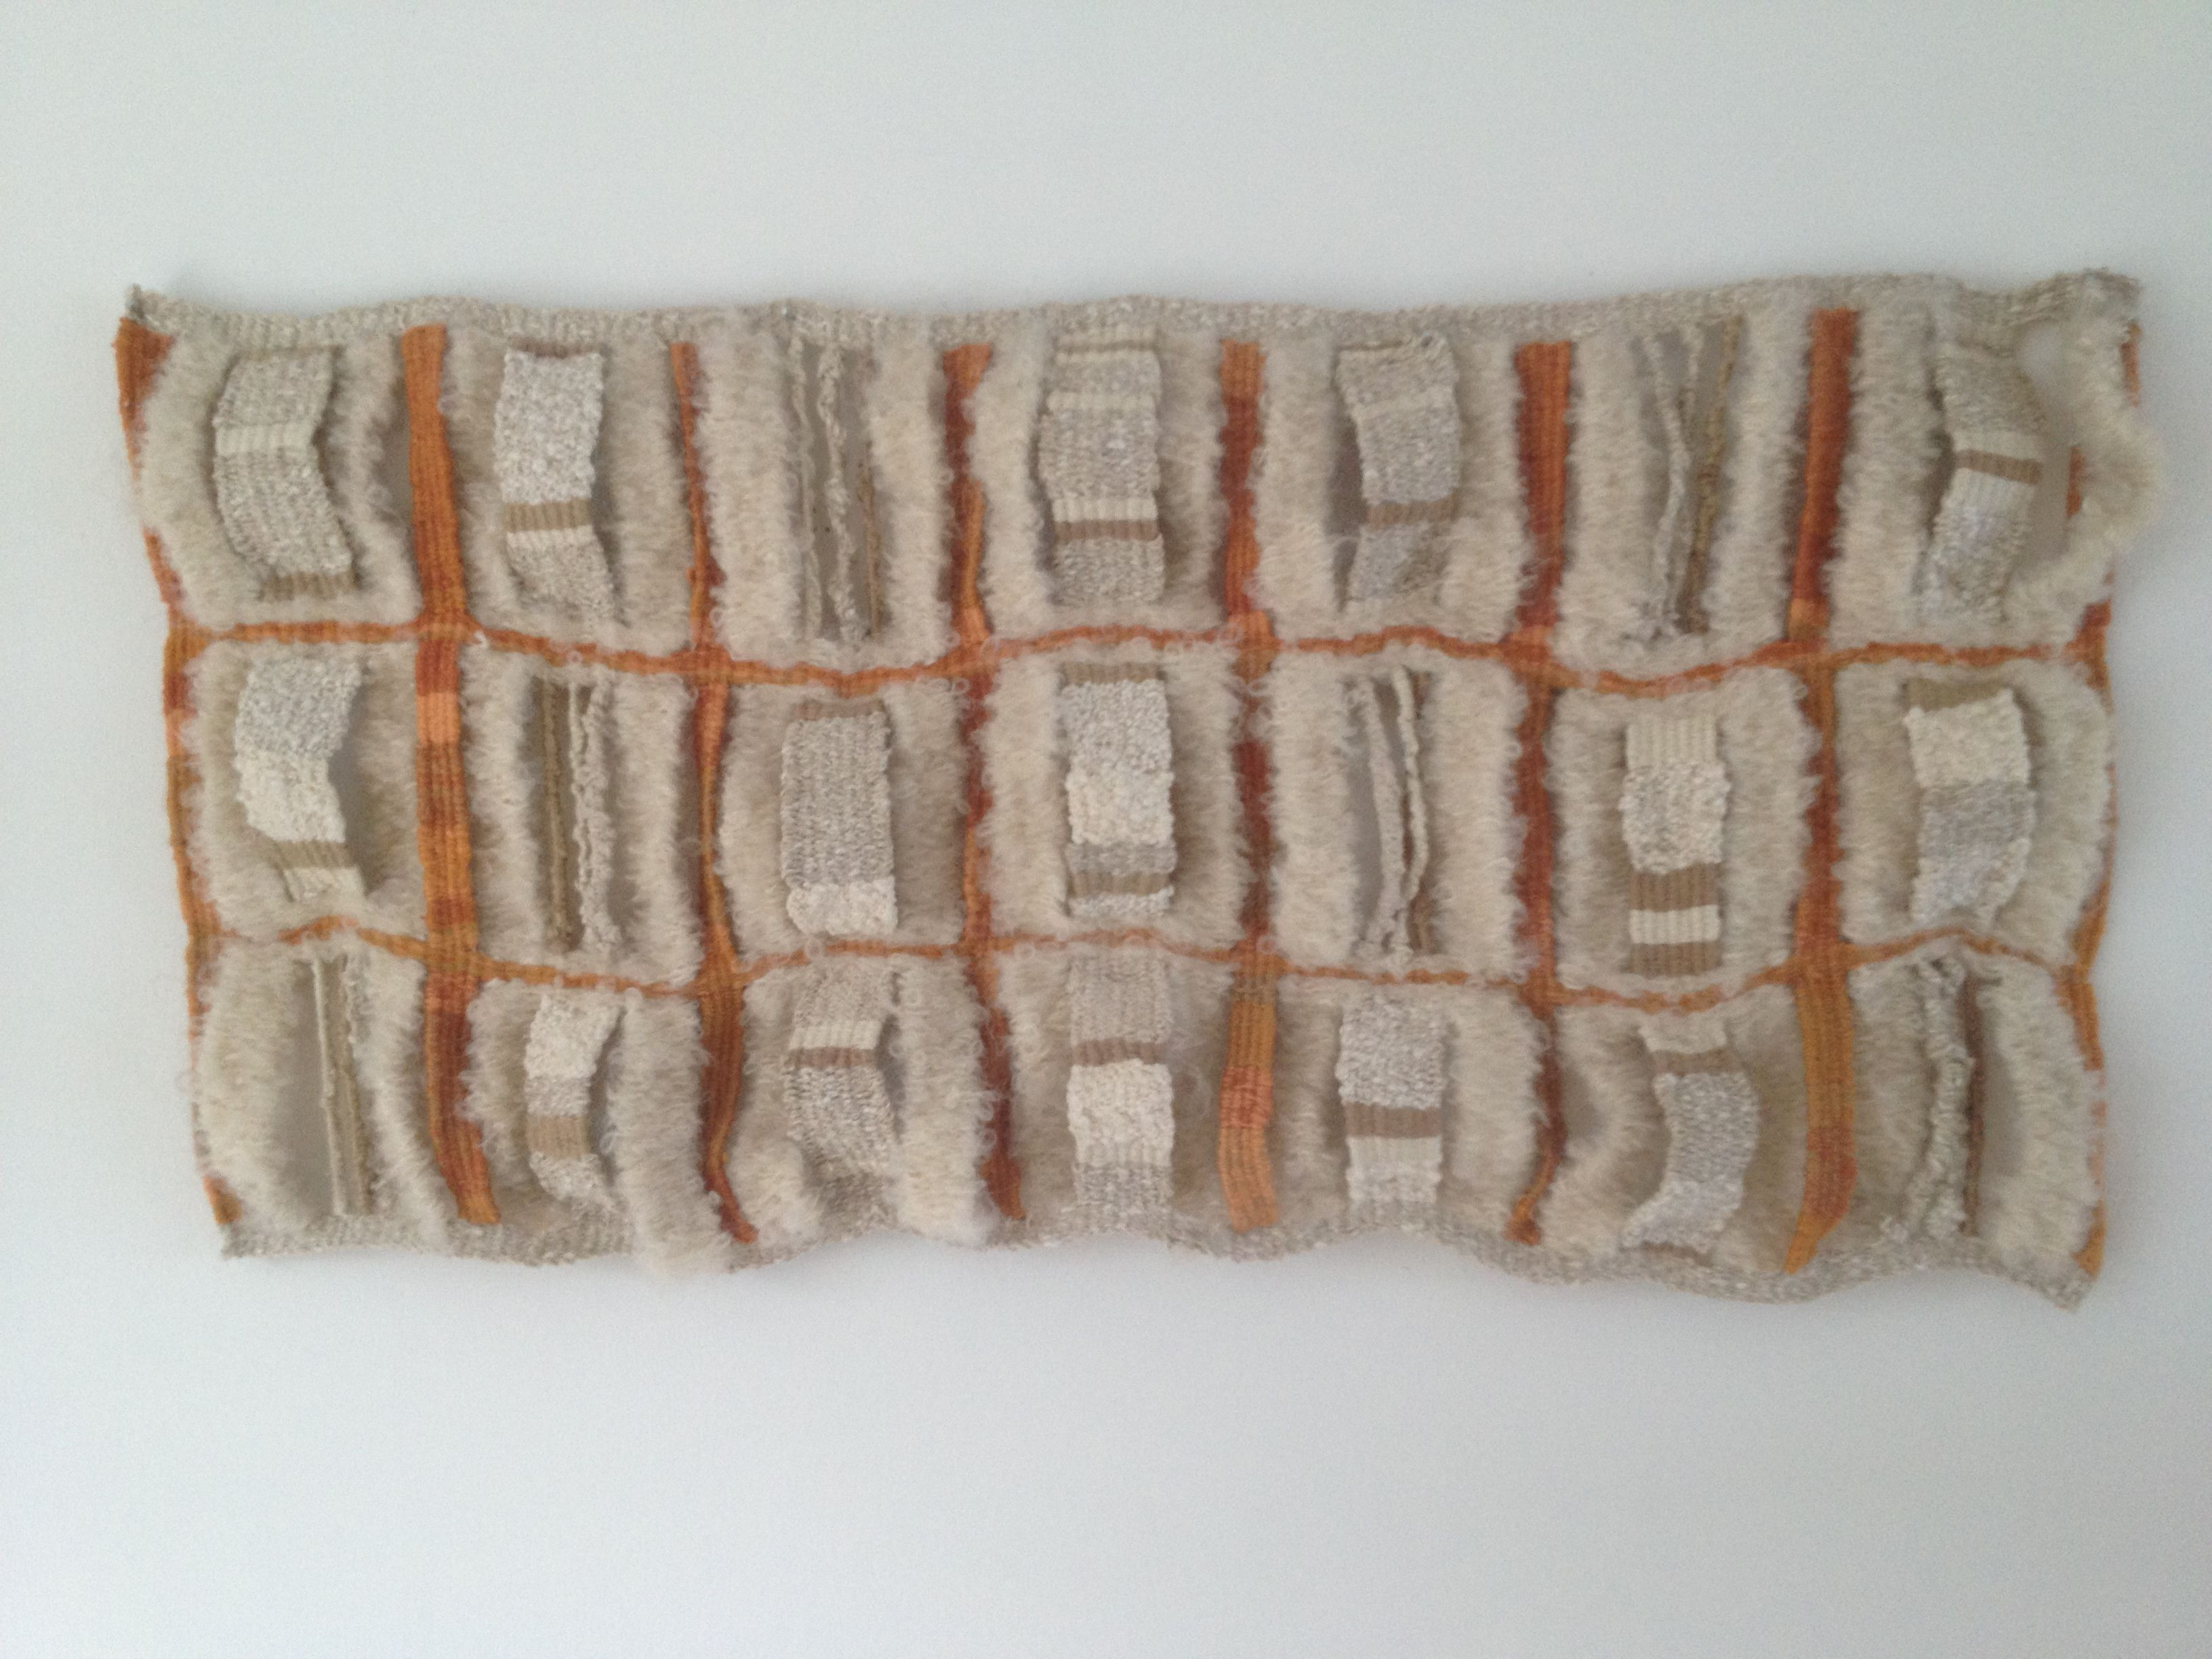 Tapestry weaving inspired by a Japanese basket.